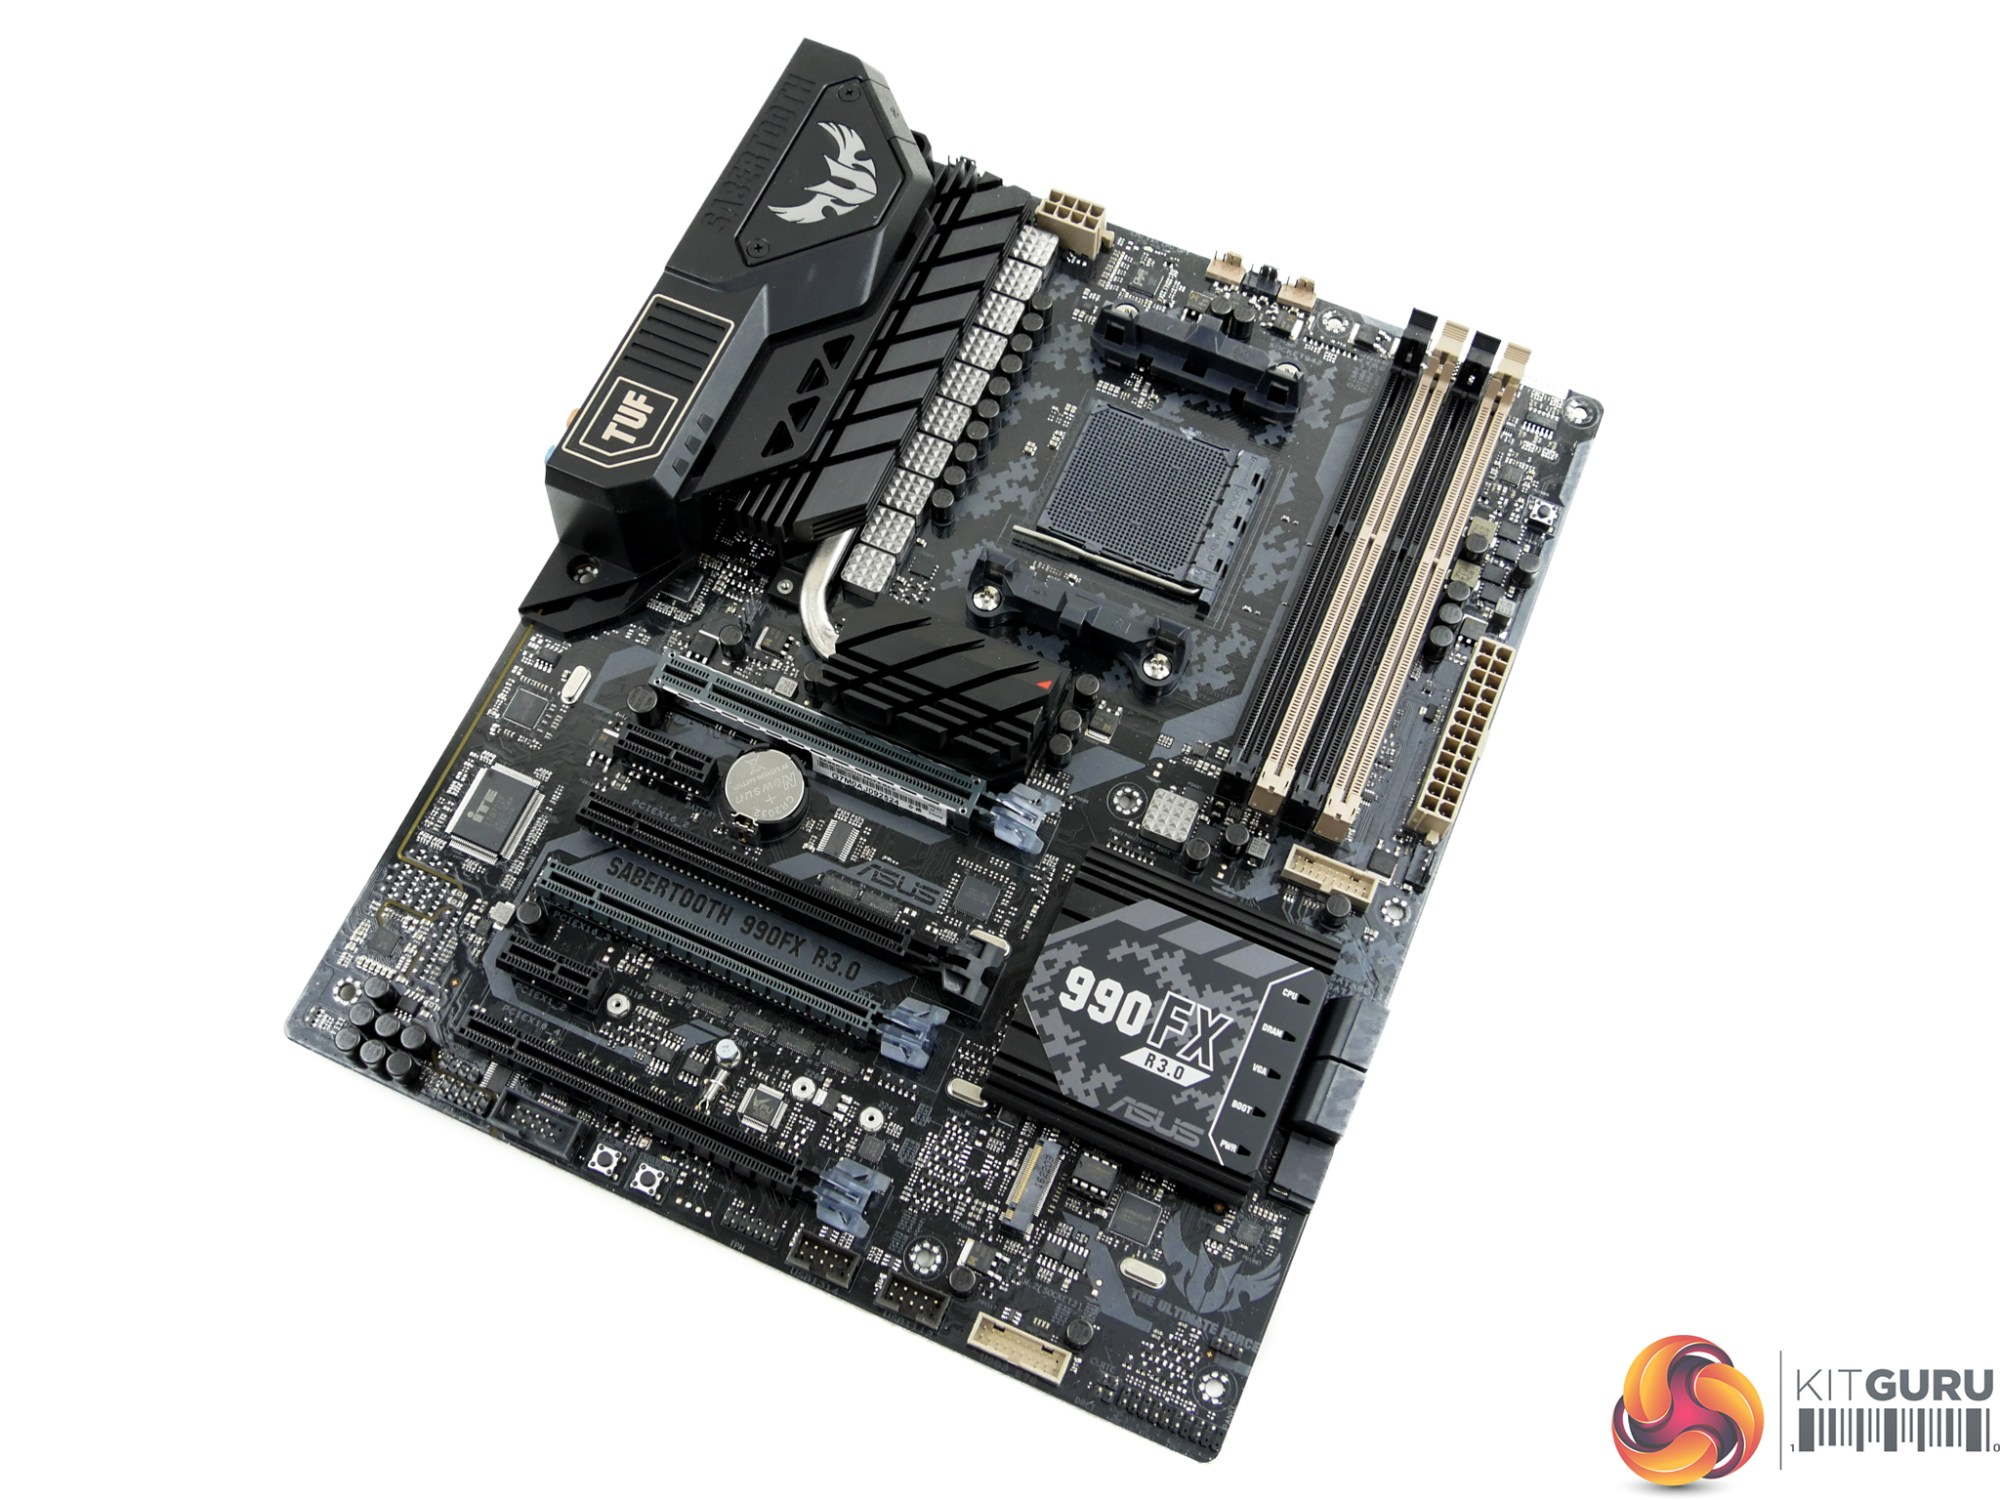 hight resolution of styling for the sabertooth 990fx r3 0 is typical for a tuf sabertooth board the pcb features a camo black and grey styling with a reflective finish while